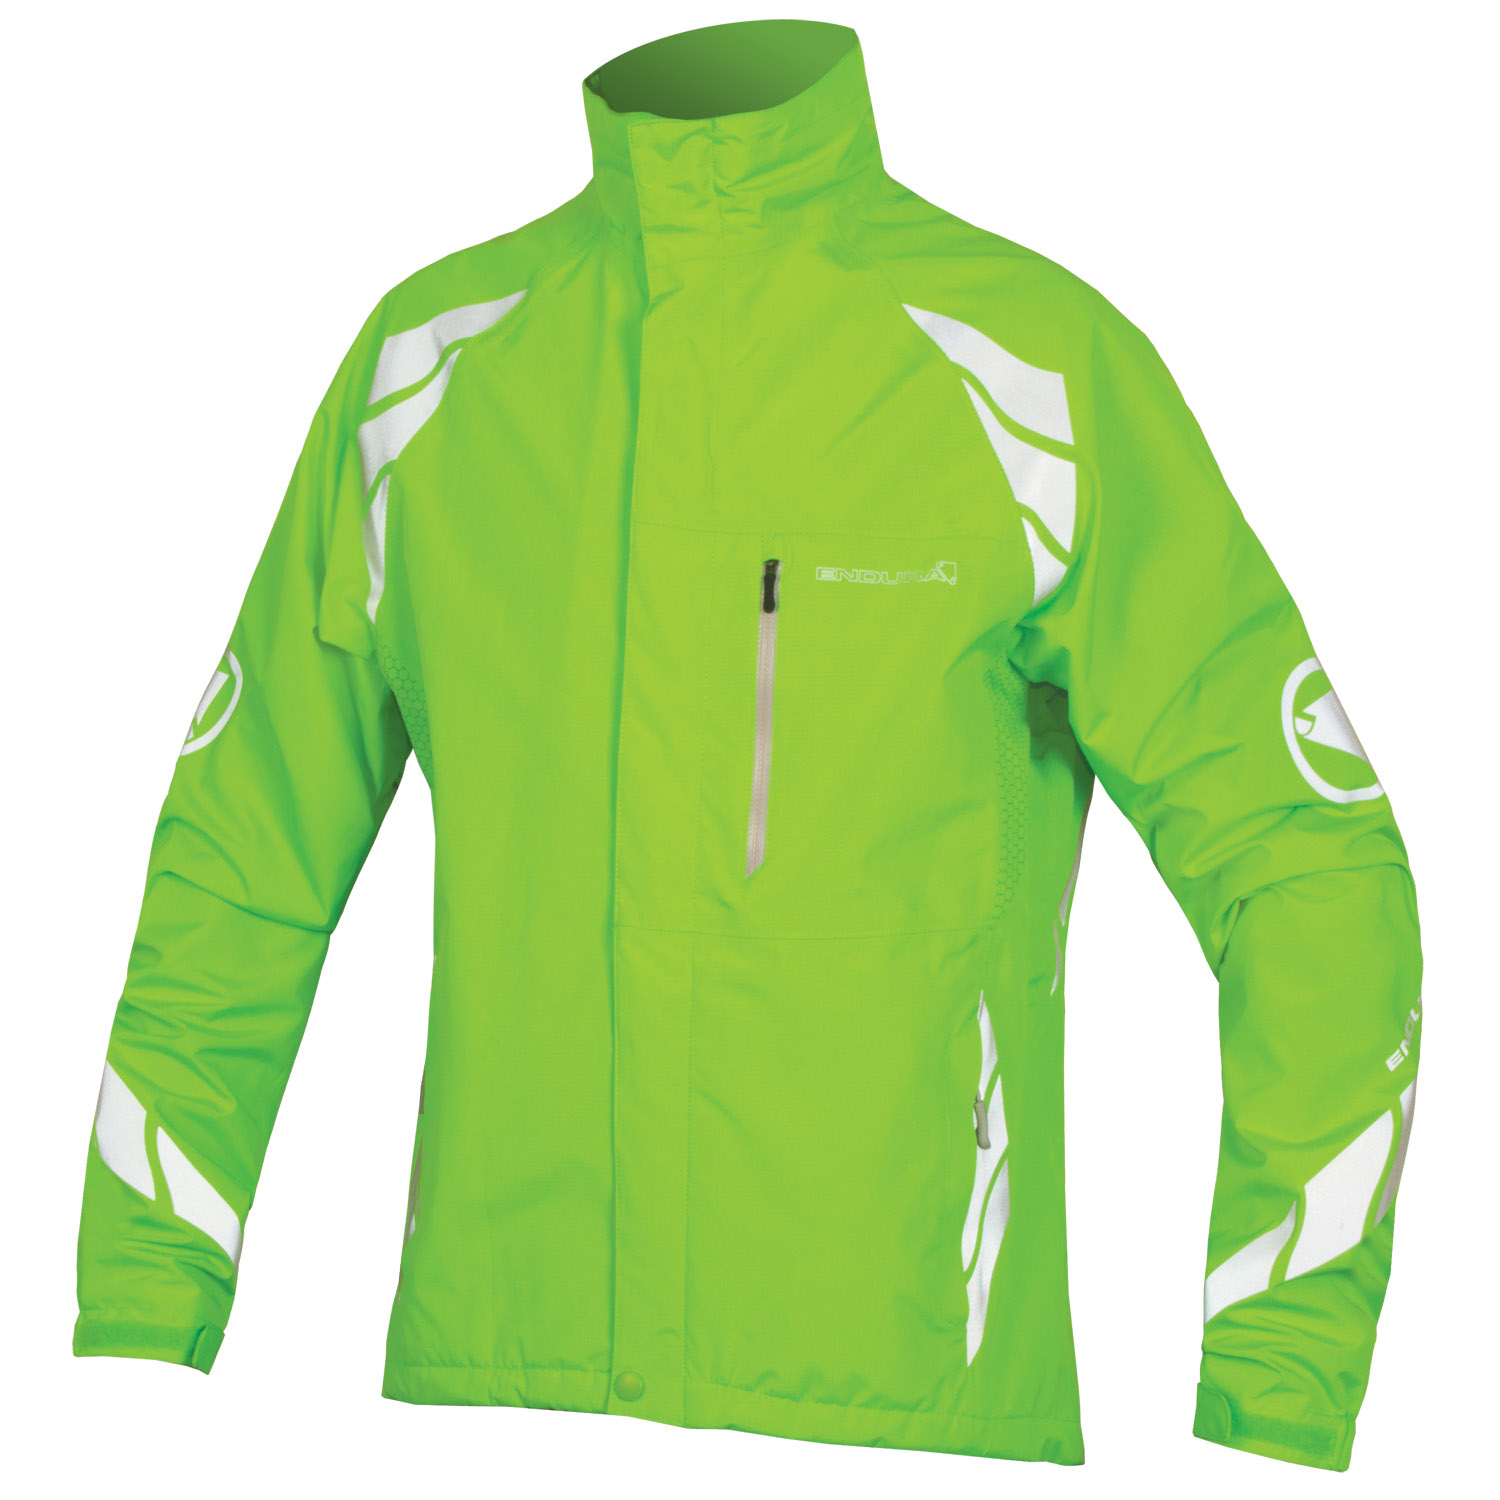 Luminite DL Jacket Hi-Viz Green